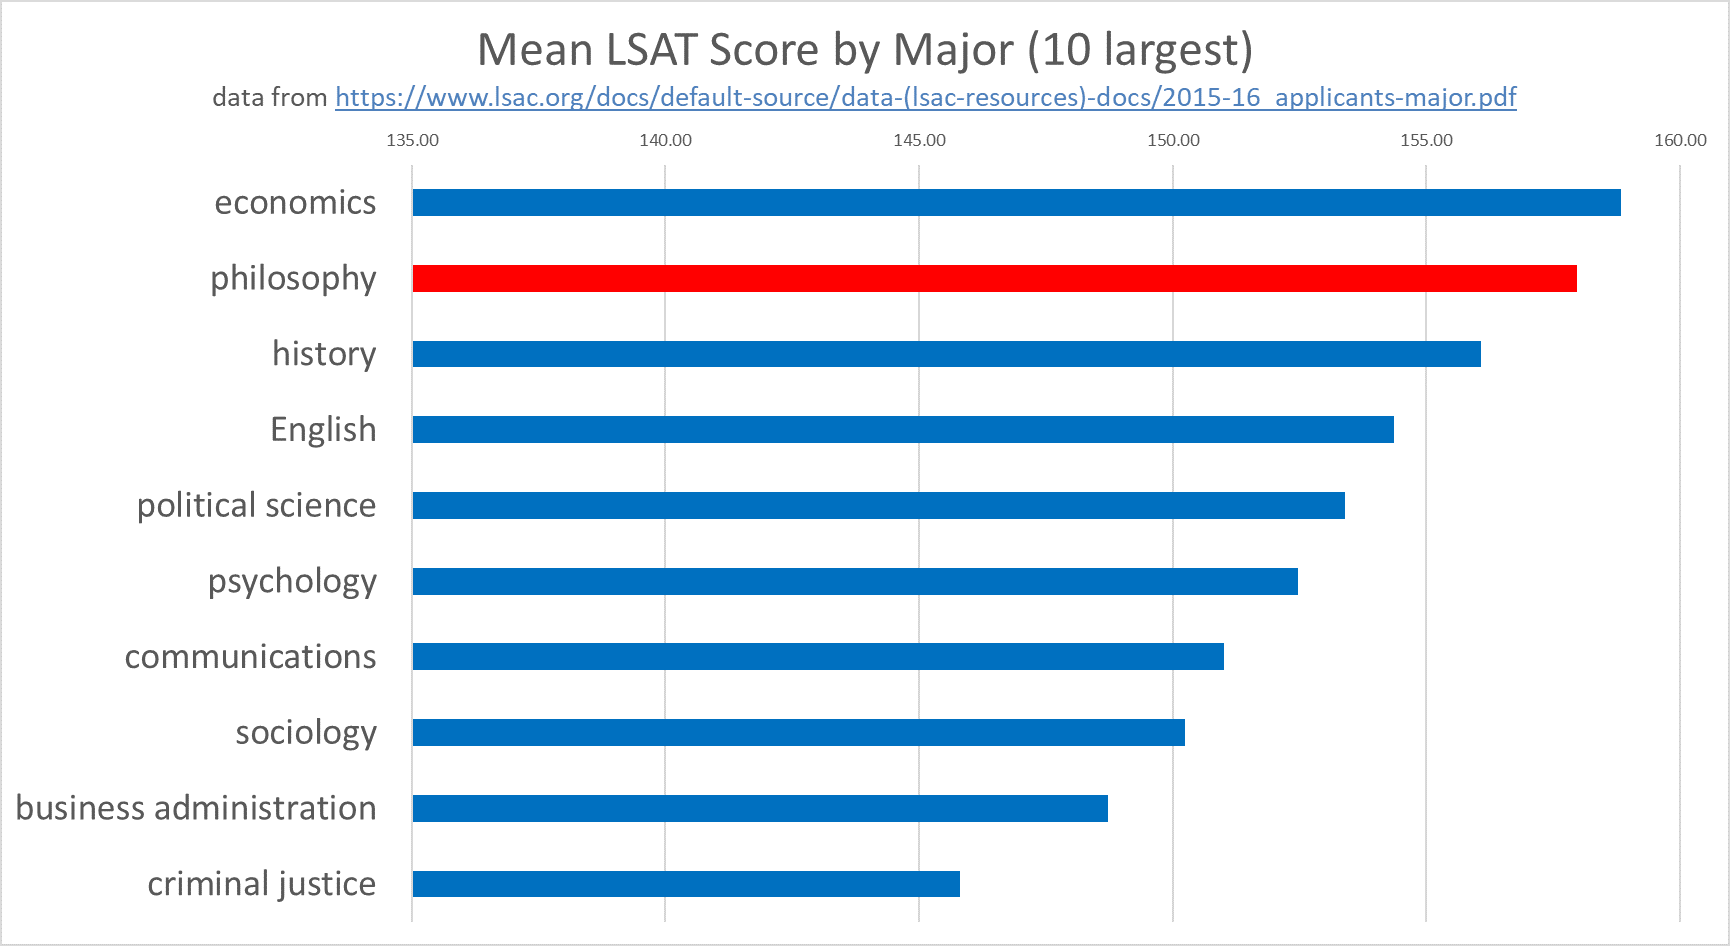 Mean LSAT Score by Major